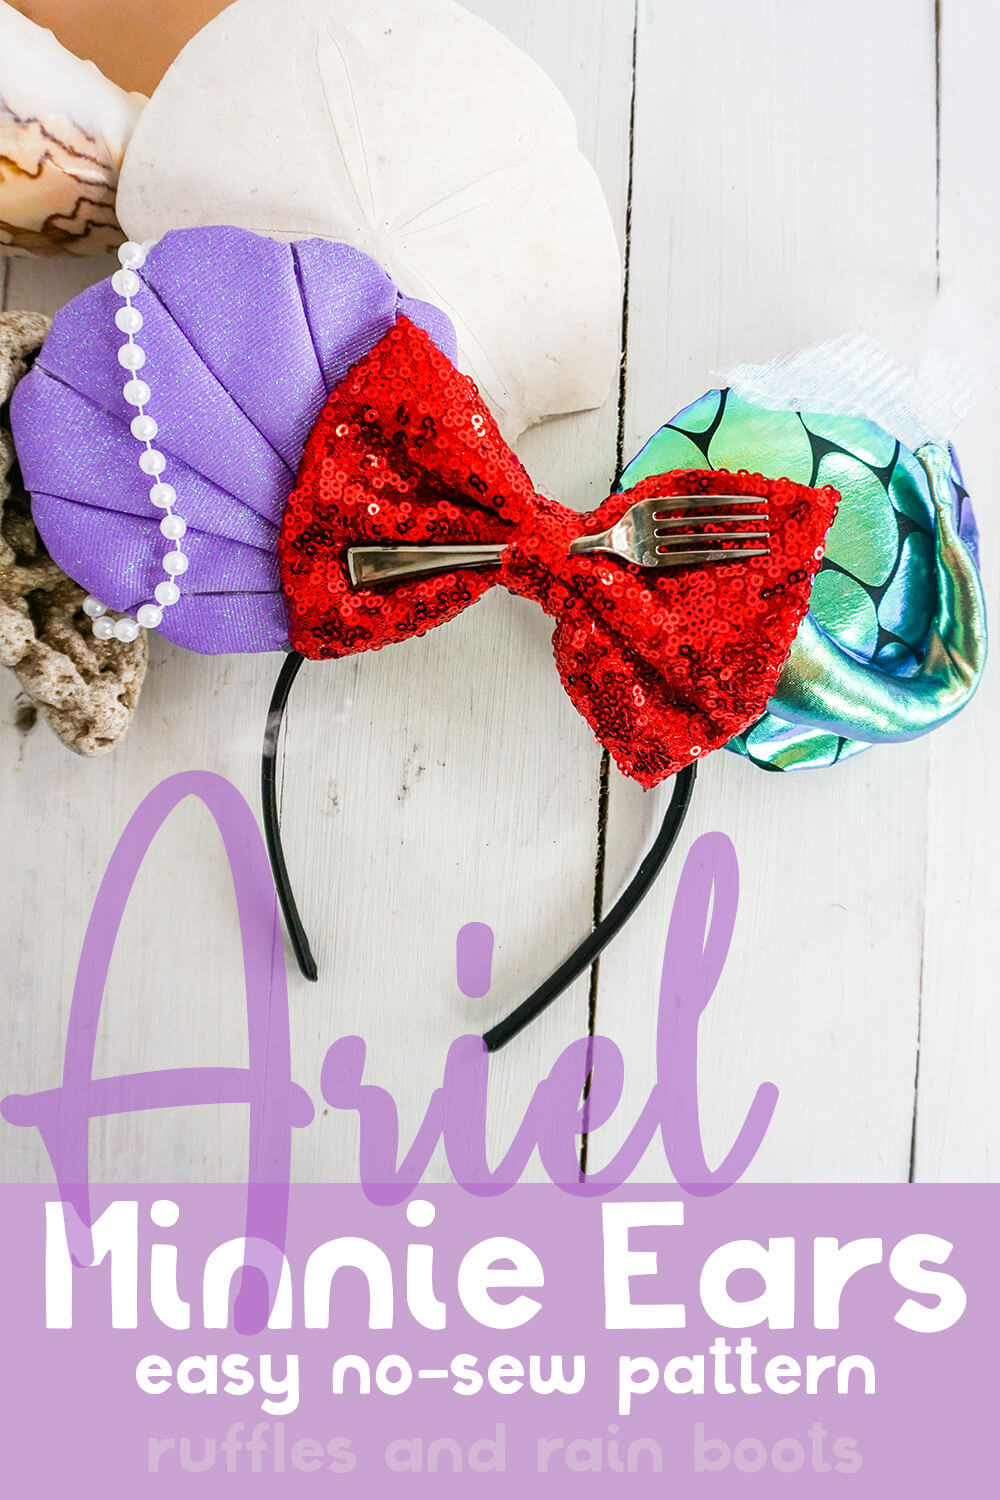 how to make no-sew ariel mickey ears for disney on a white wood background with text which reads ariel minnie ears easy no-sew pattern